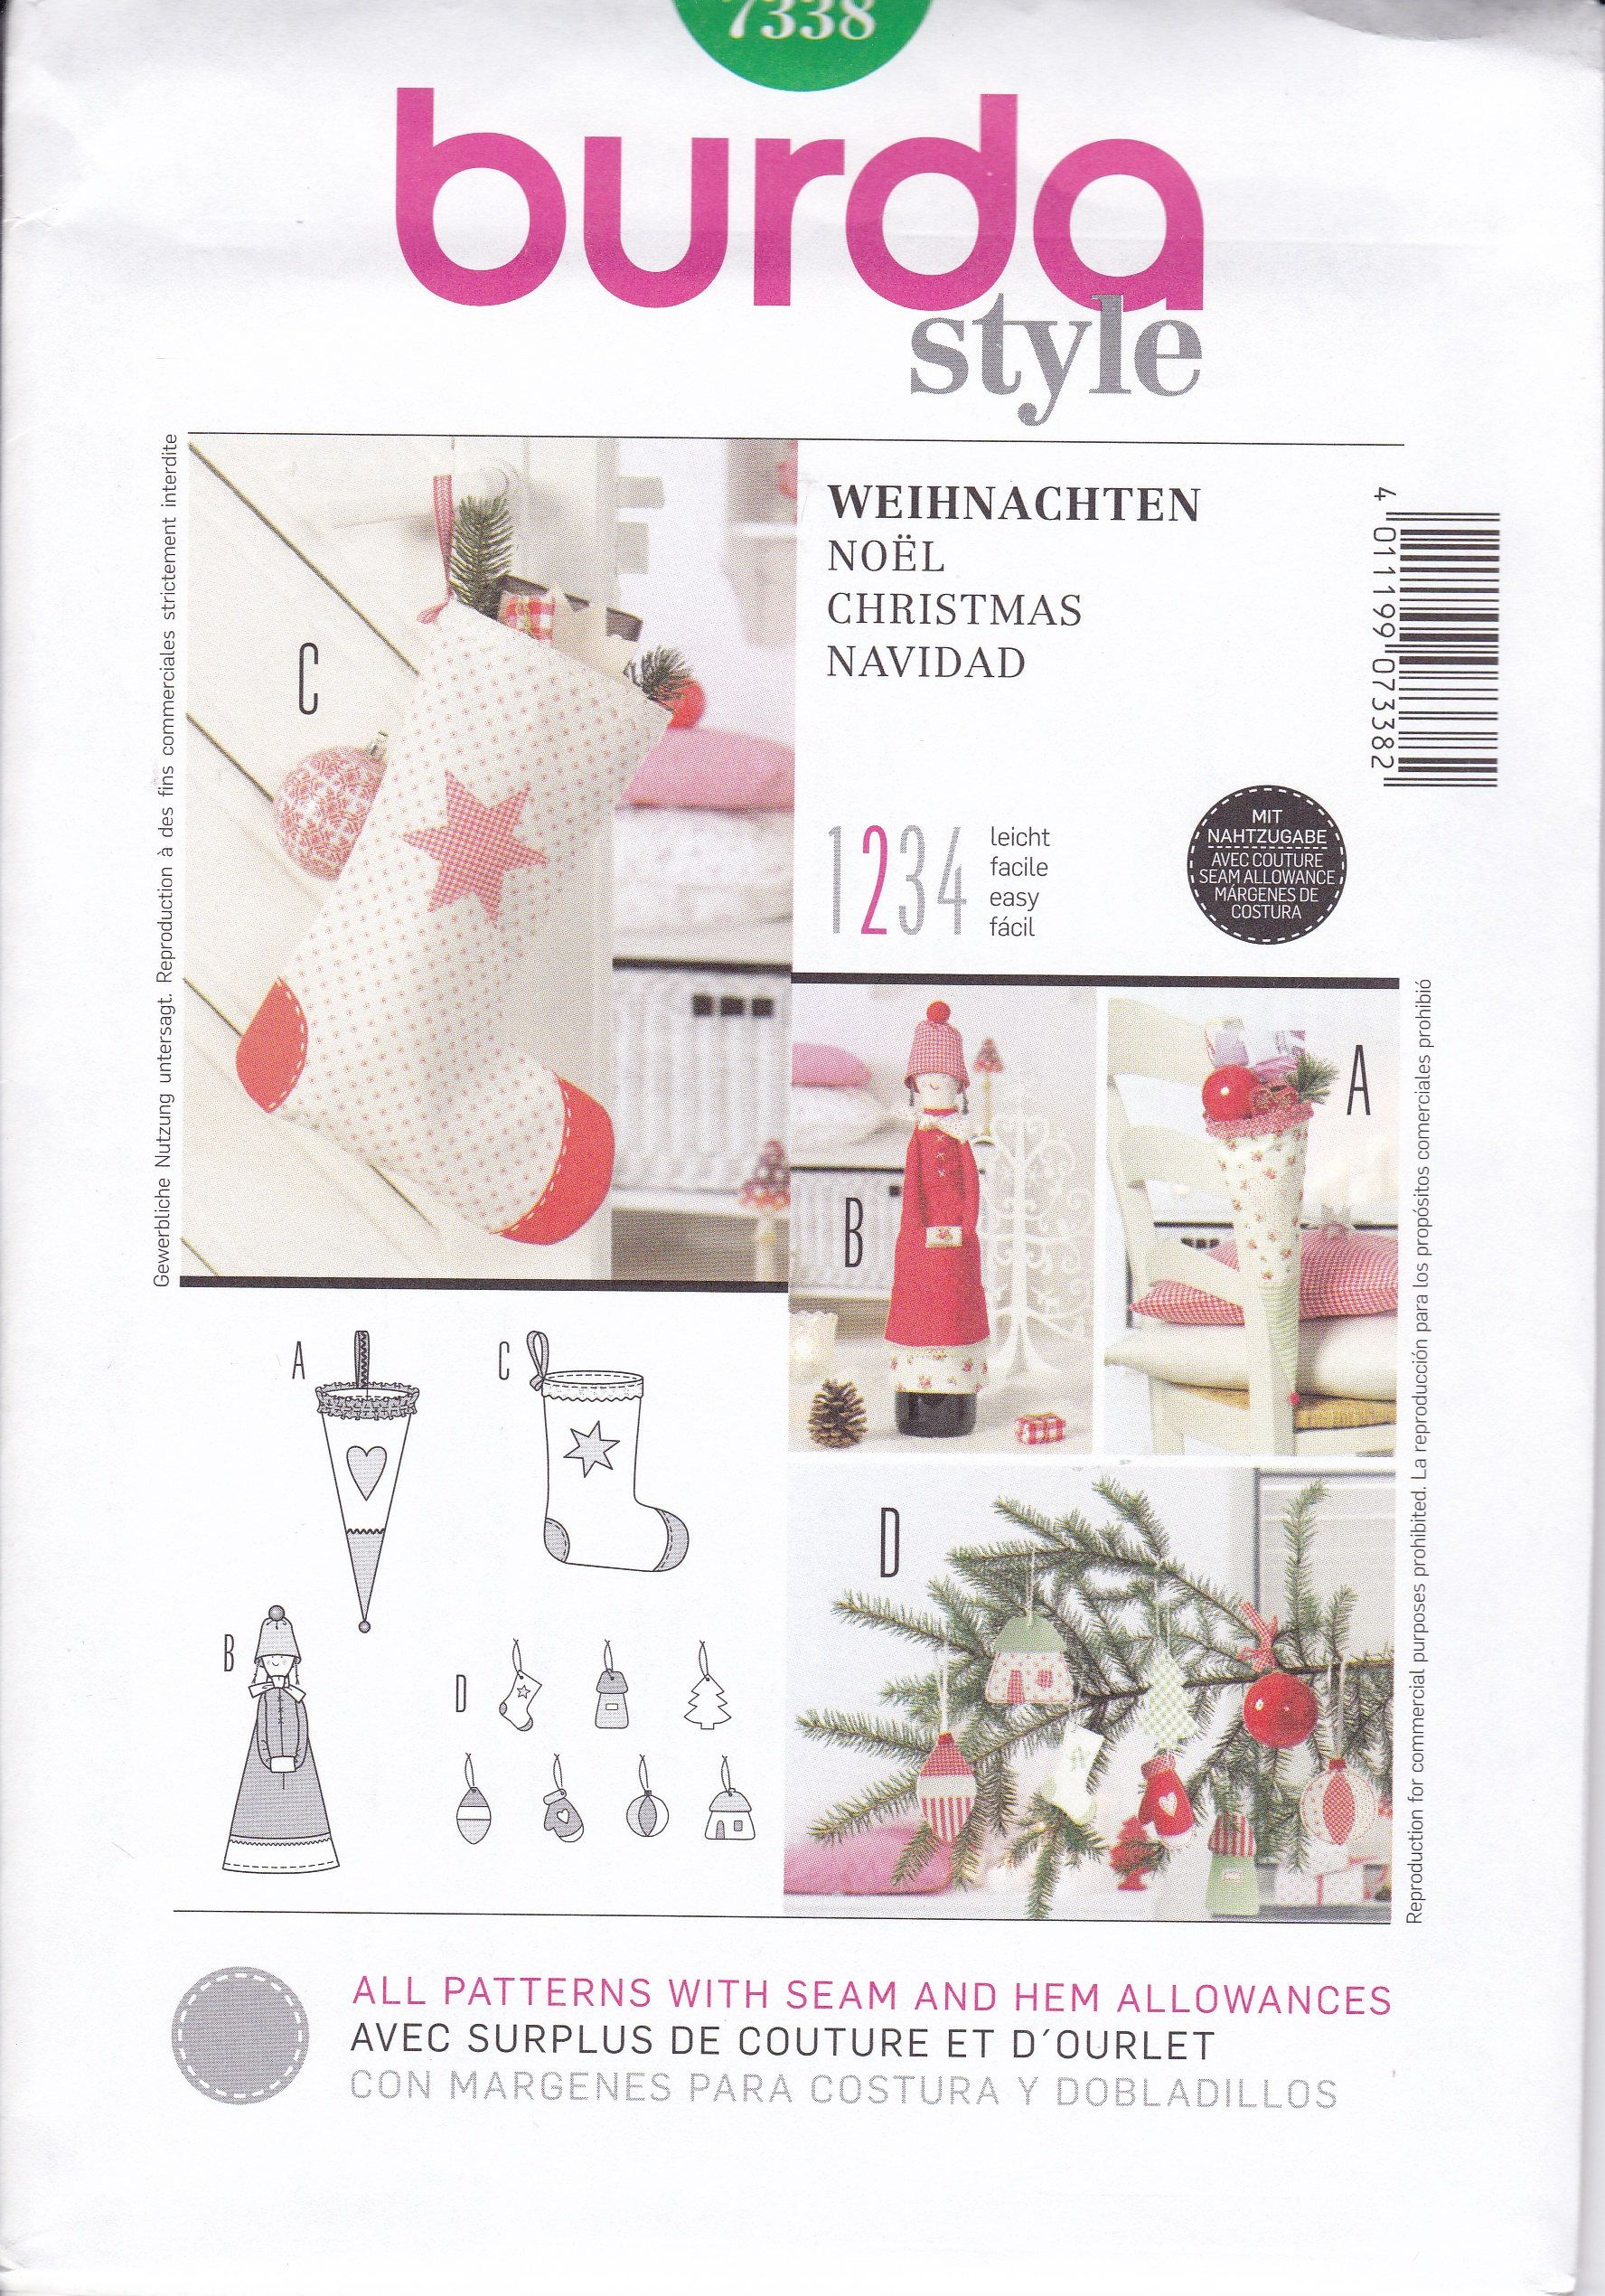 Free us ship burda 7338 craft sewing pattern christmas stocking free us ship burda 7338 craft sewing pattern christmas stocking ornaments doll cone uncut new by jeuxipadfo Gallery